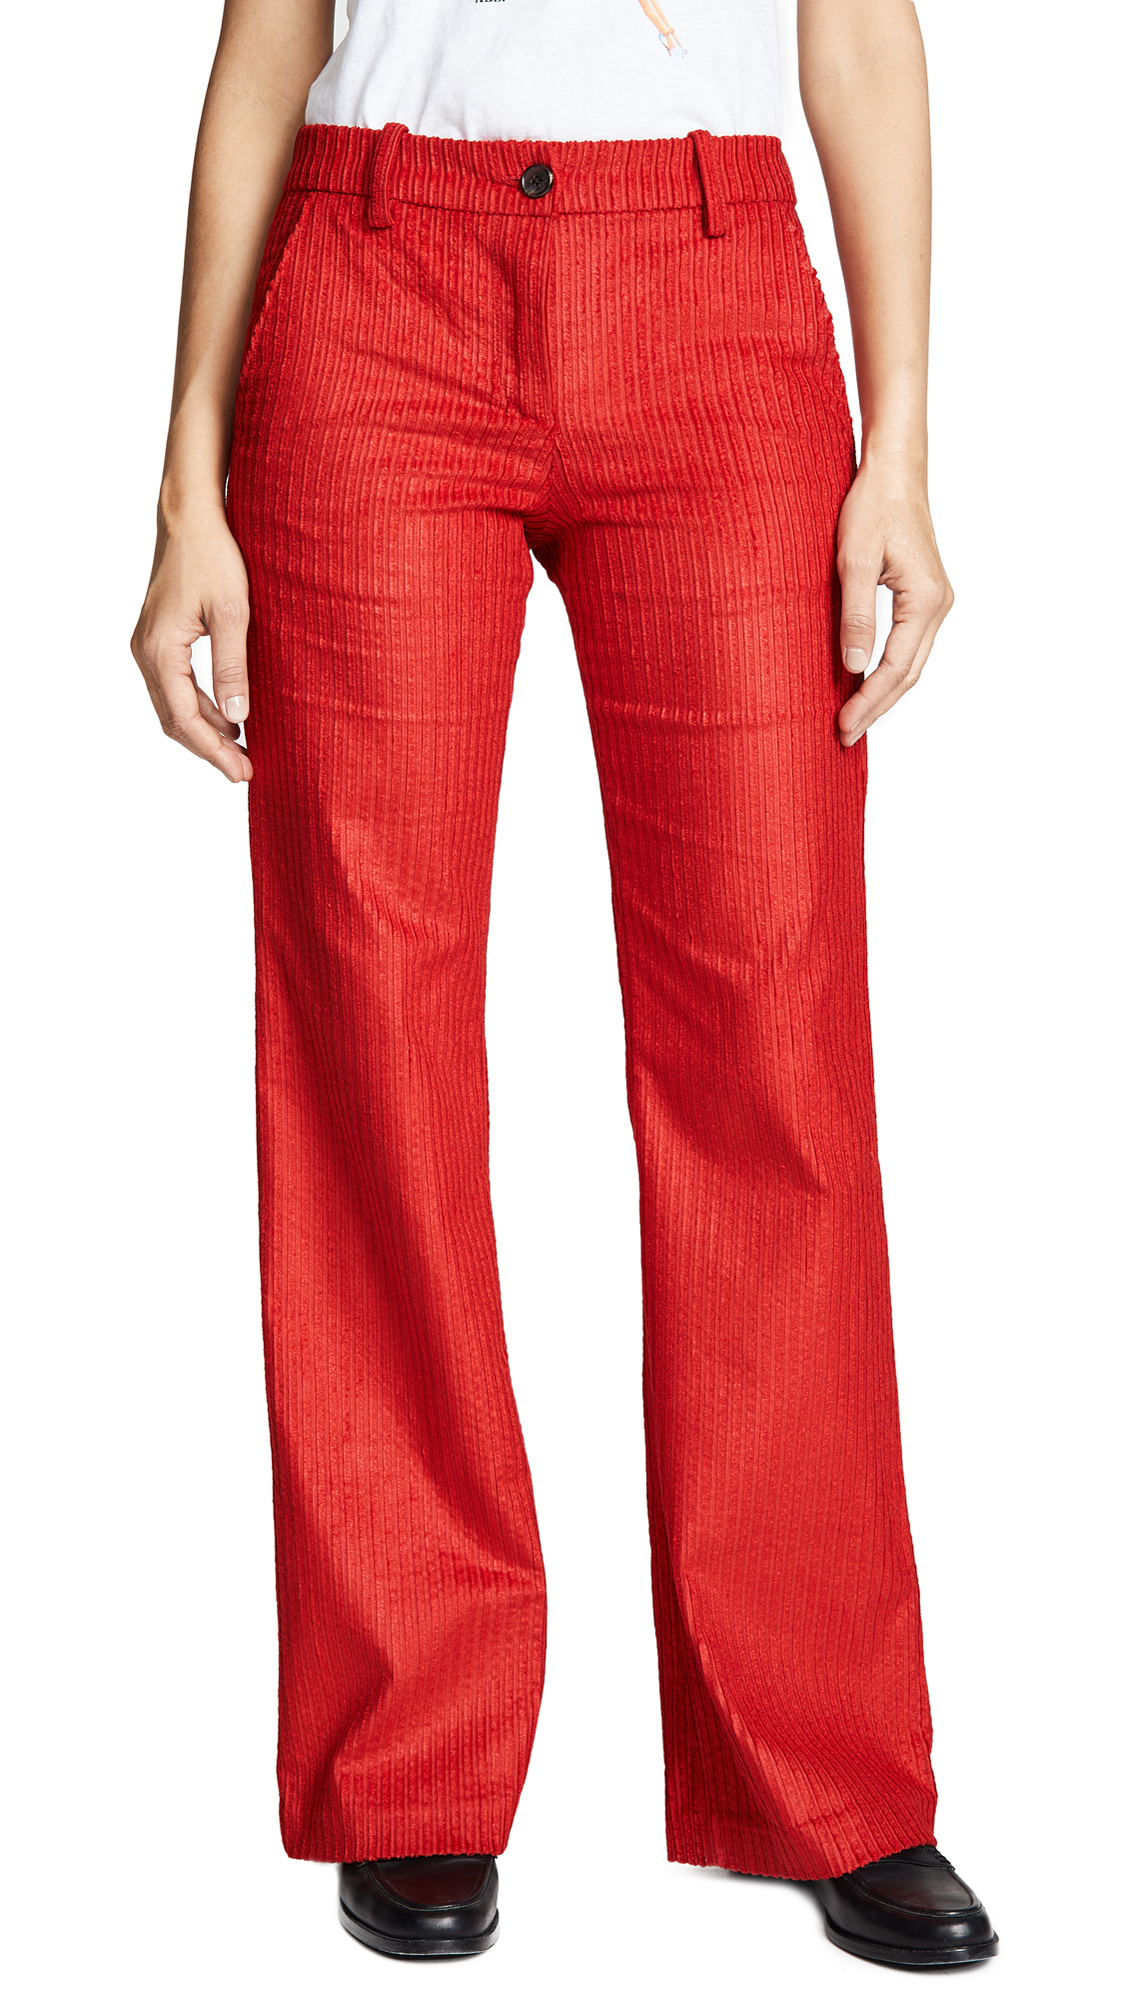 CORDUROY WIDE FLARE TROUSERS